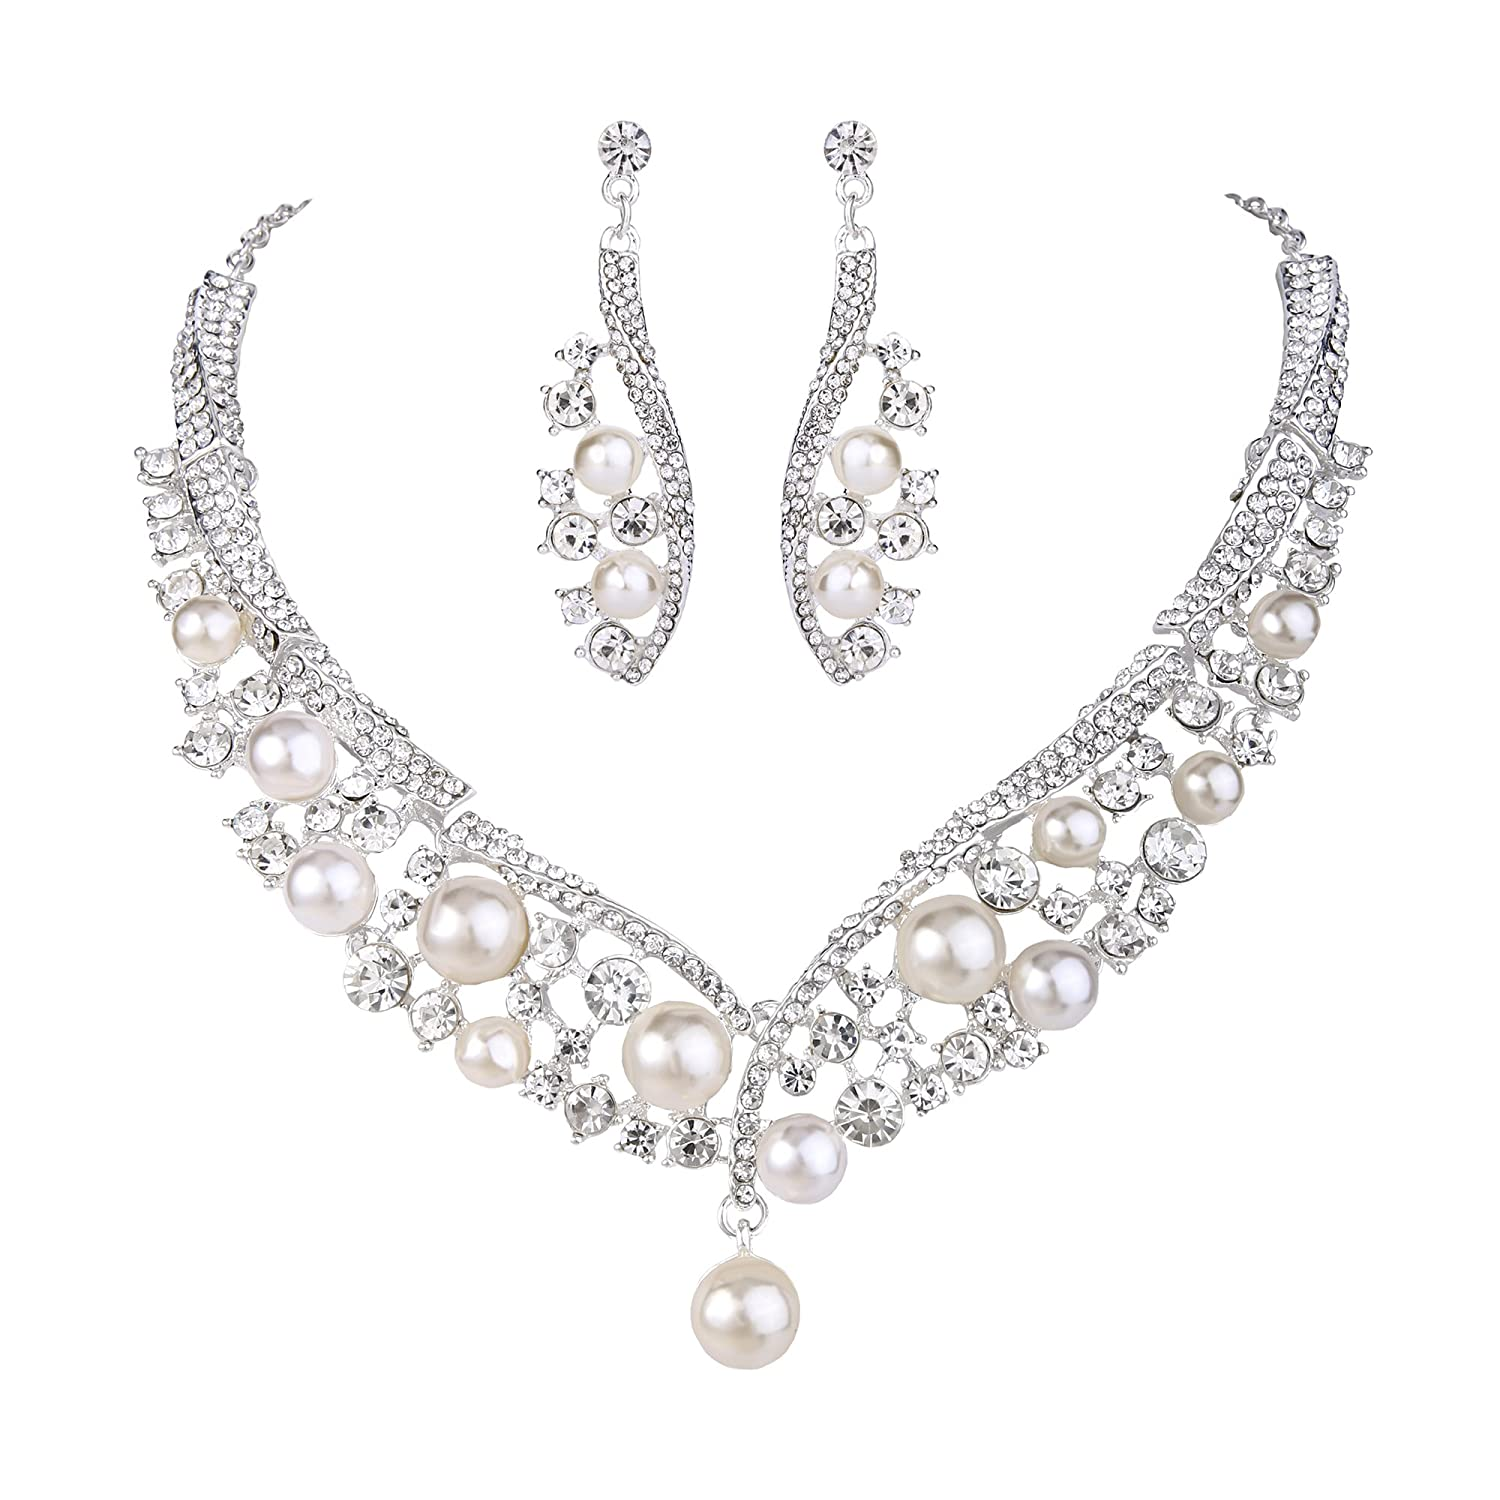 BriLove Women's Wedding Bridal Crystal Cream Simulated Pearl Cluster Beaded Statement Necklace Dangle Earrings Set Ivory Sliver Tone 12001776-1ca